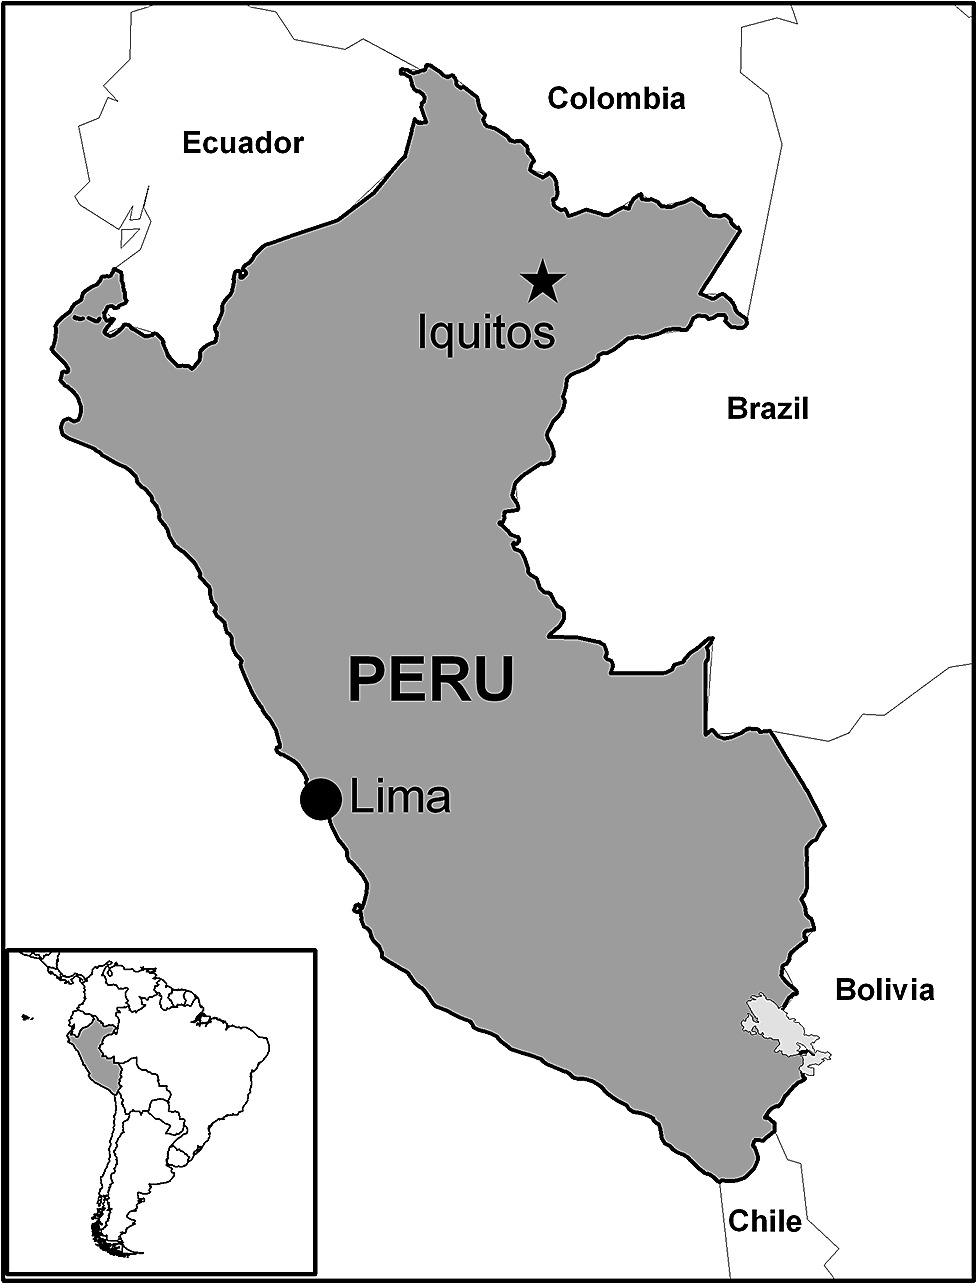 Map Of Peru Indicating The Study Site Of Iquitos In The Peruvian Amazon Basin And The Capital Lima Site Of The Main U S Medical Research Unit No